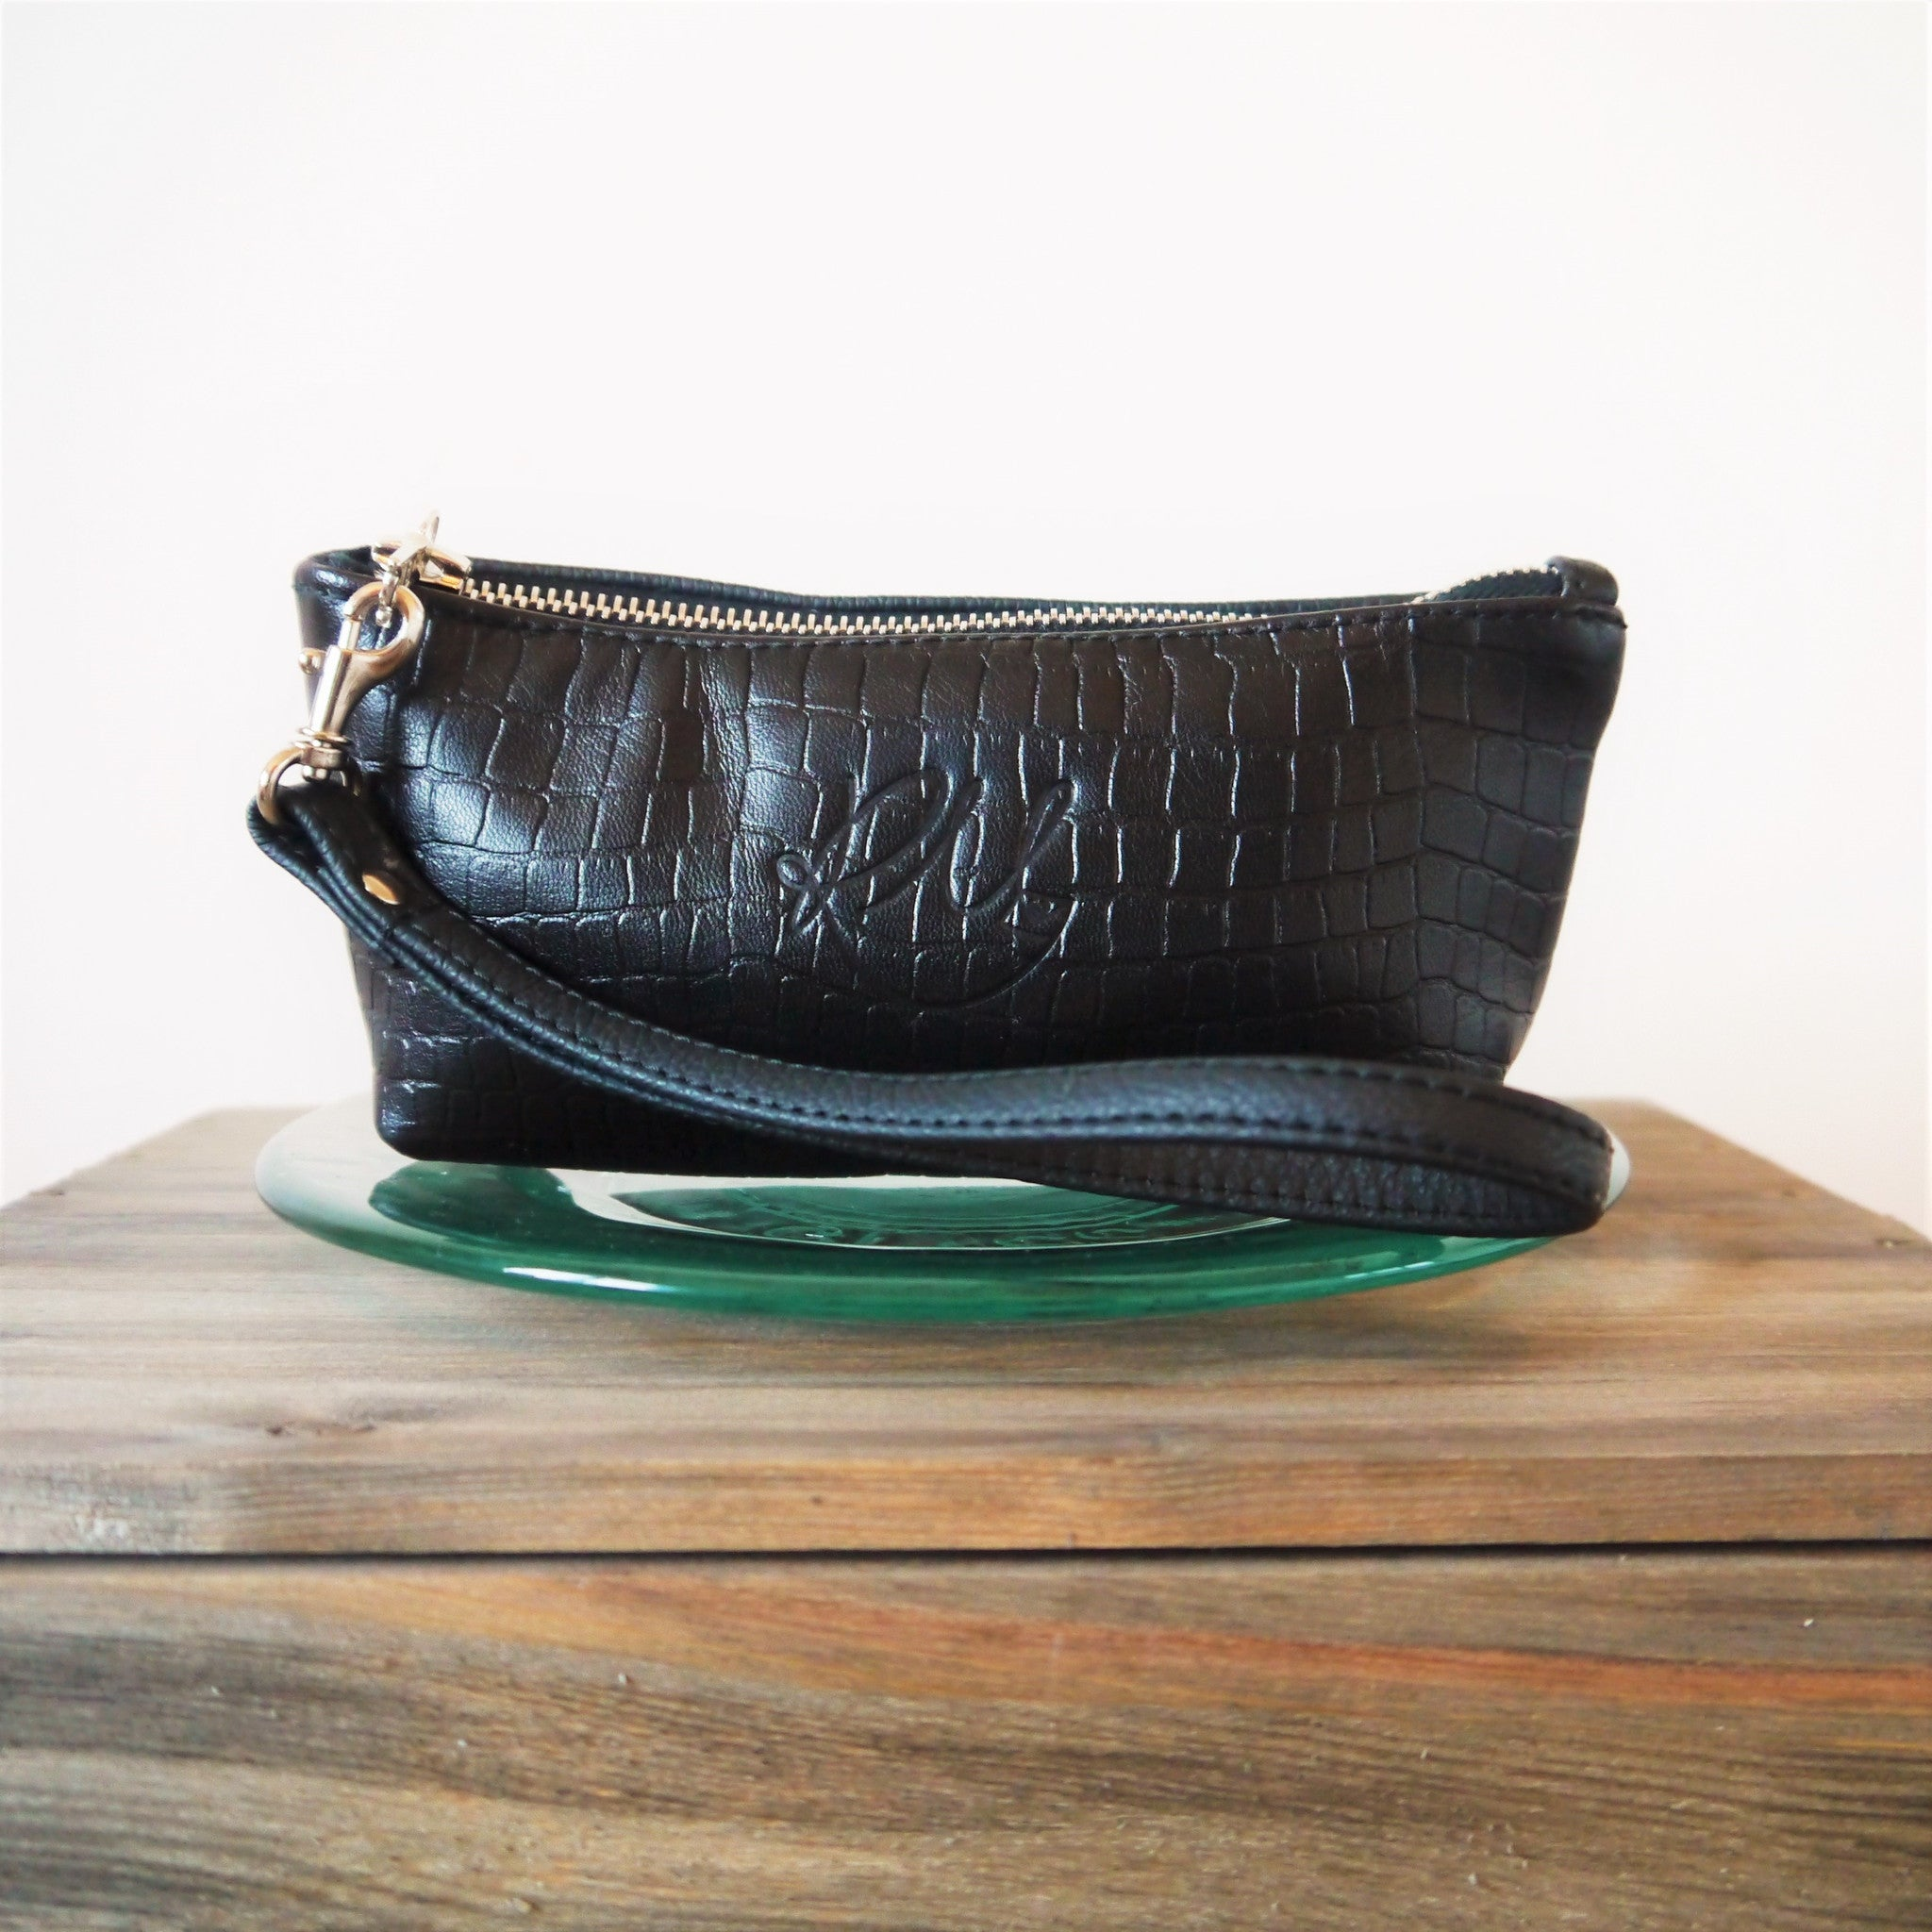 LIMITED EDITION S/S16 Poppy small leather make up bag - Croc print